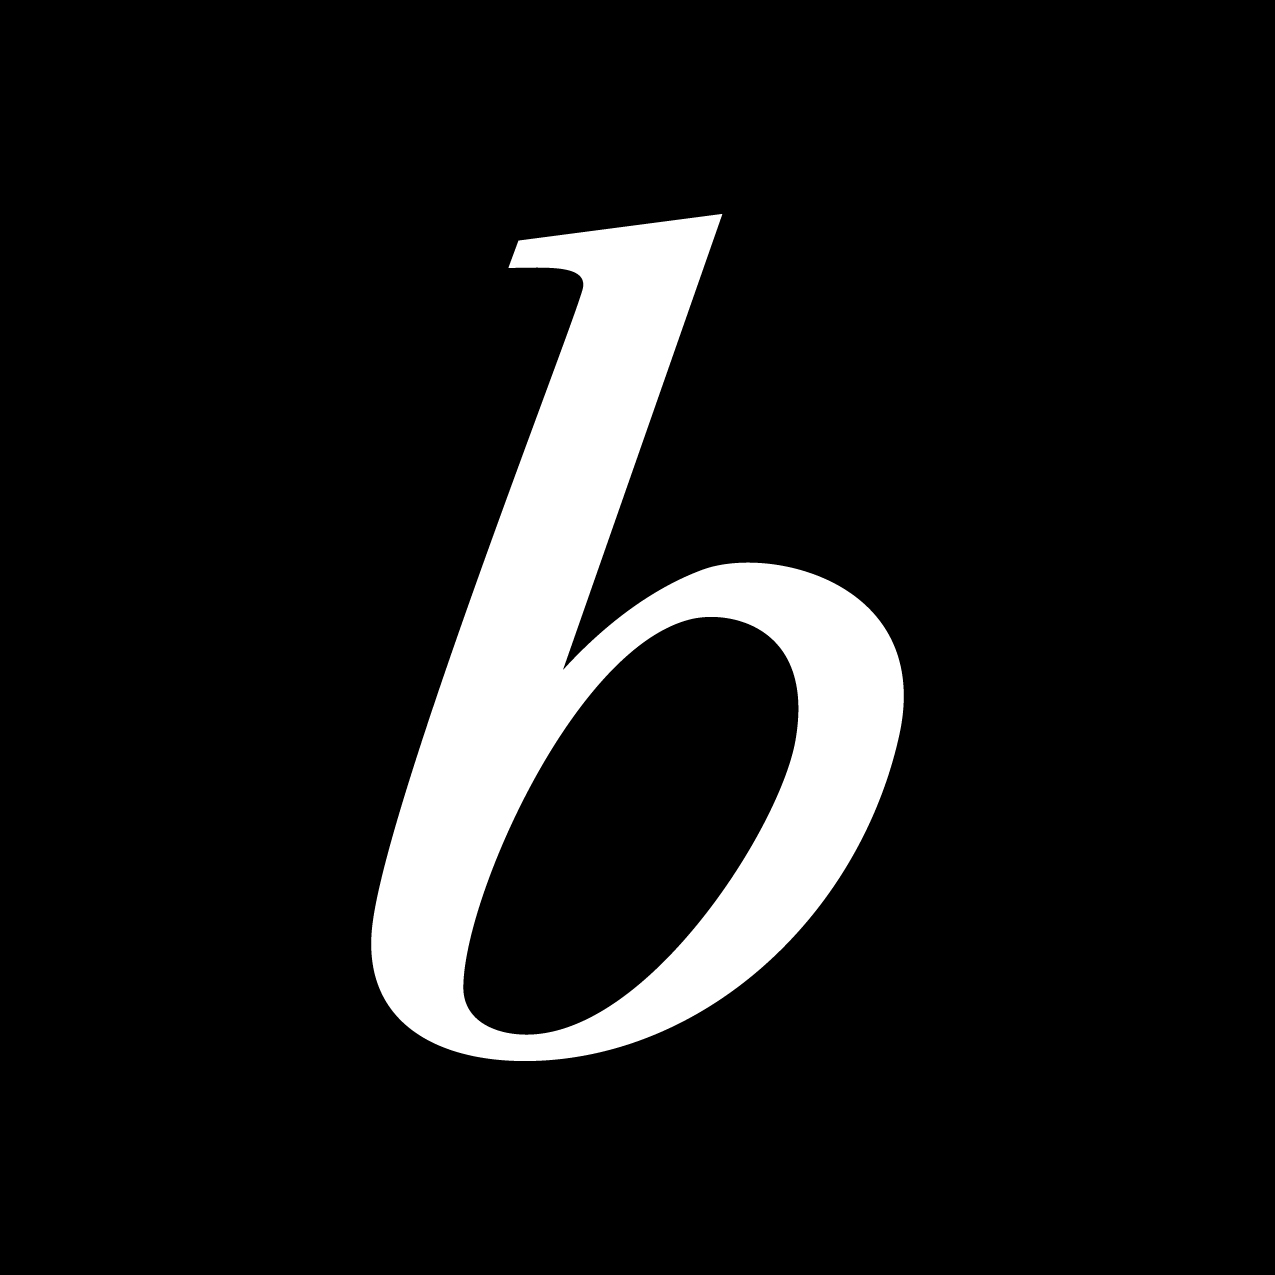 Letter B6 design by Furia